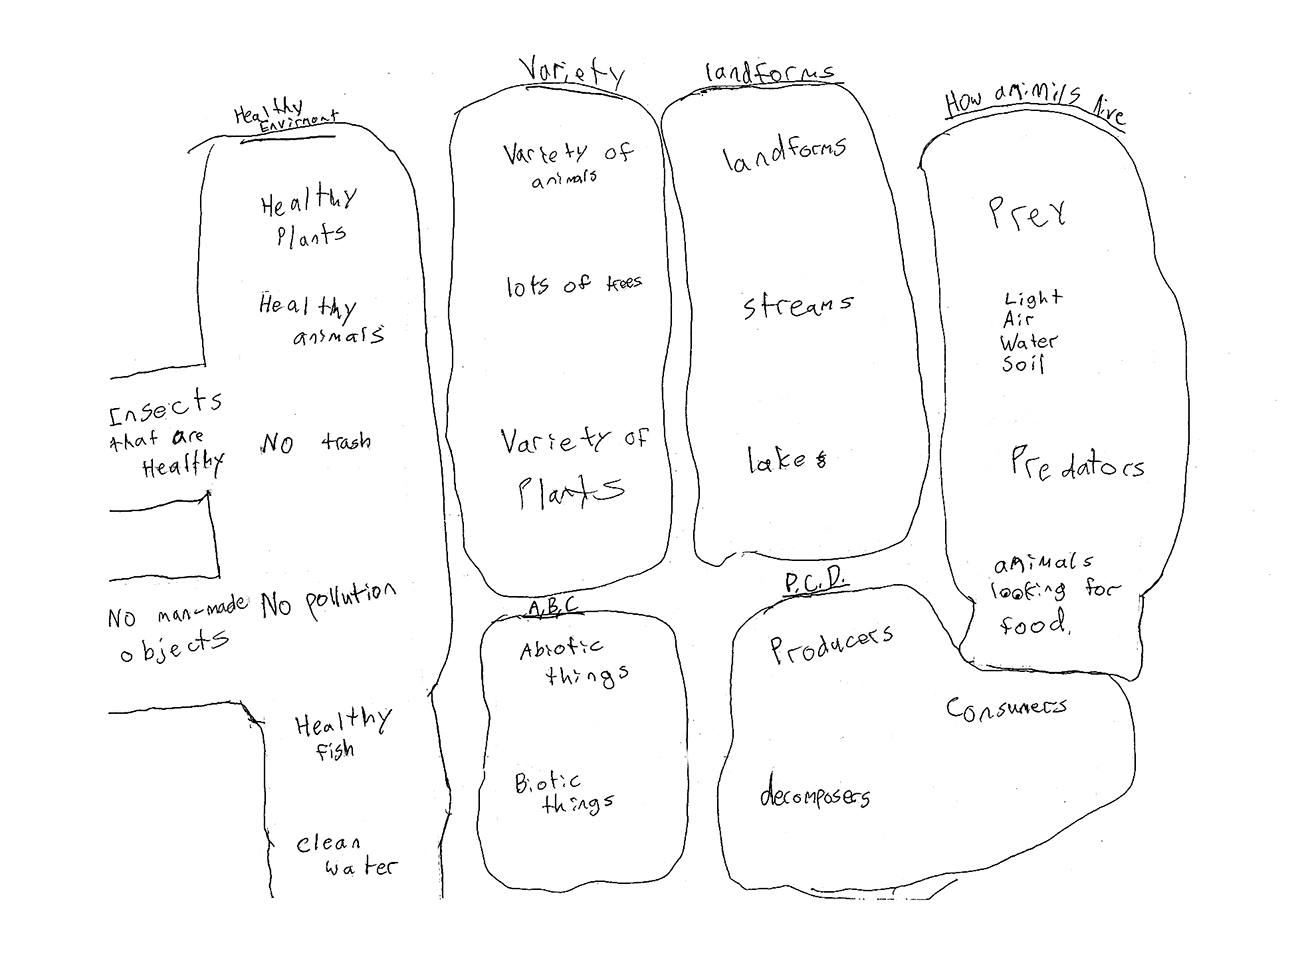 Figure 16.1. A middle school student's cognitive map of a healthy natural environment.